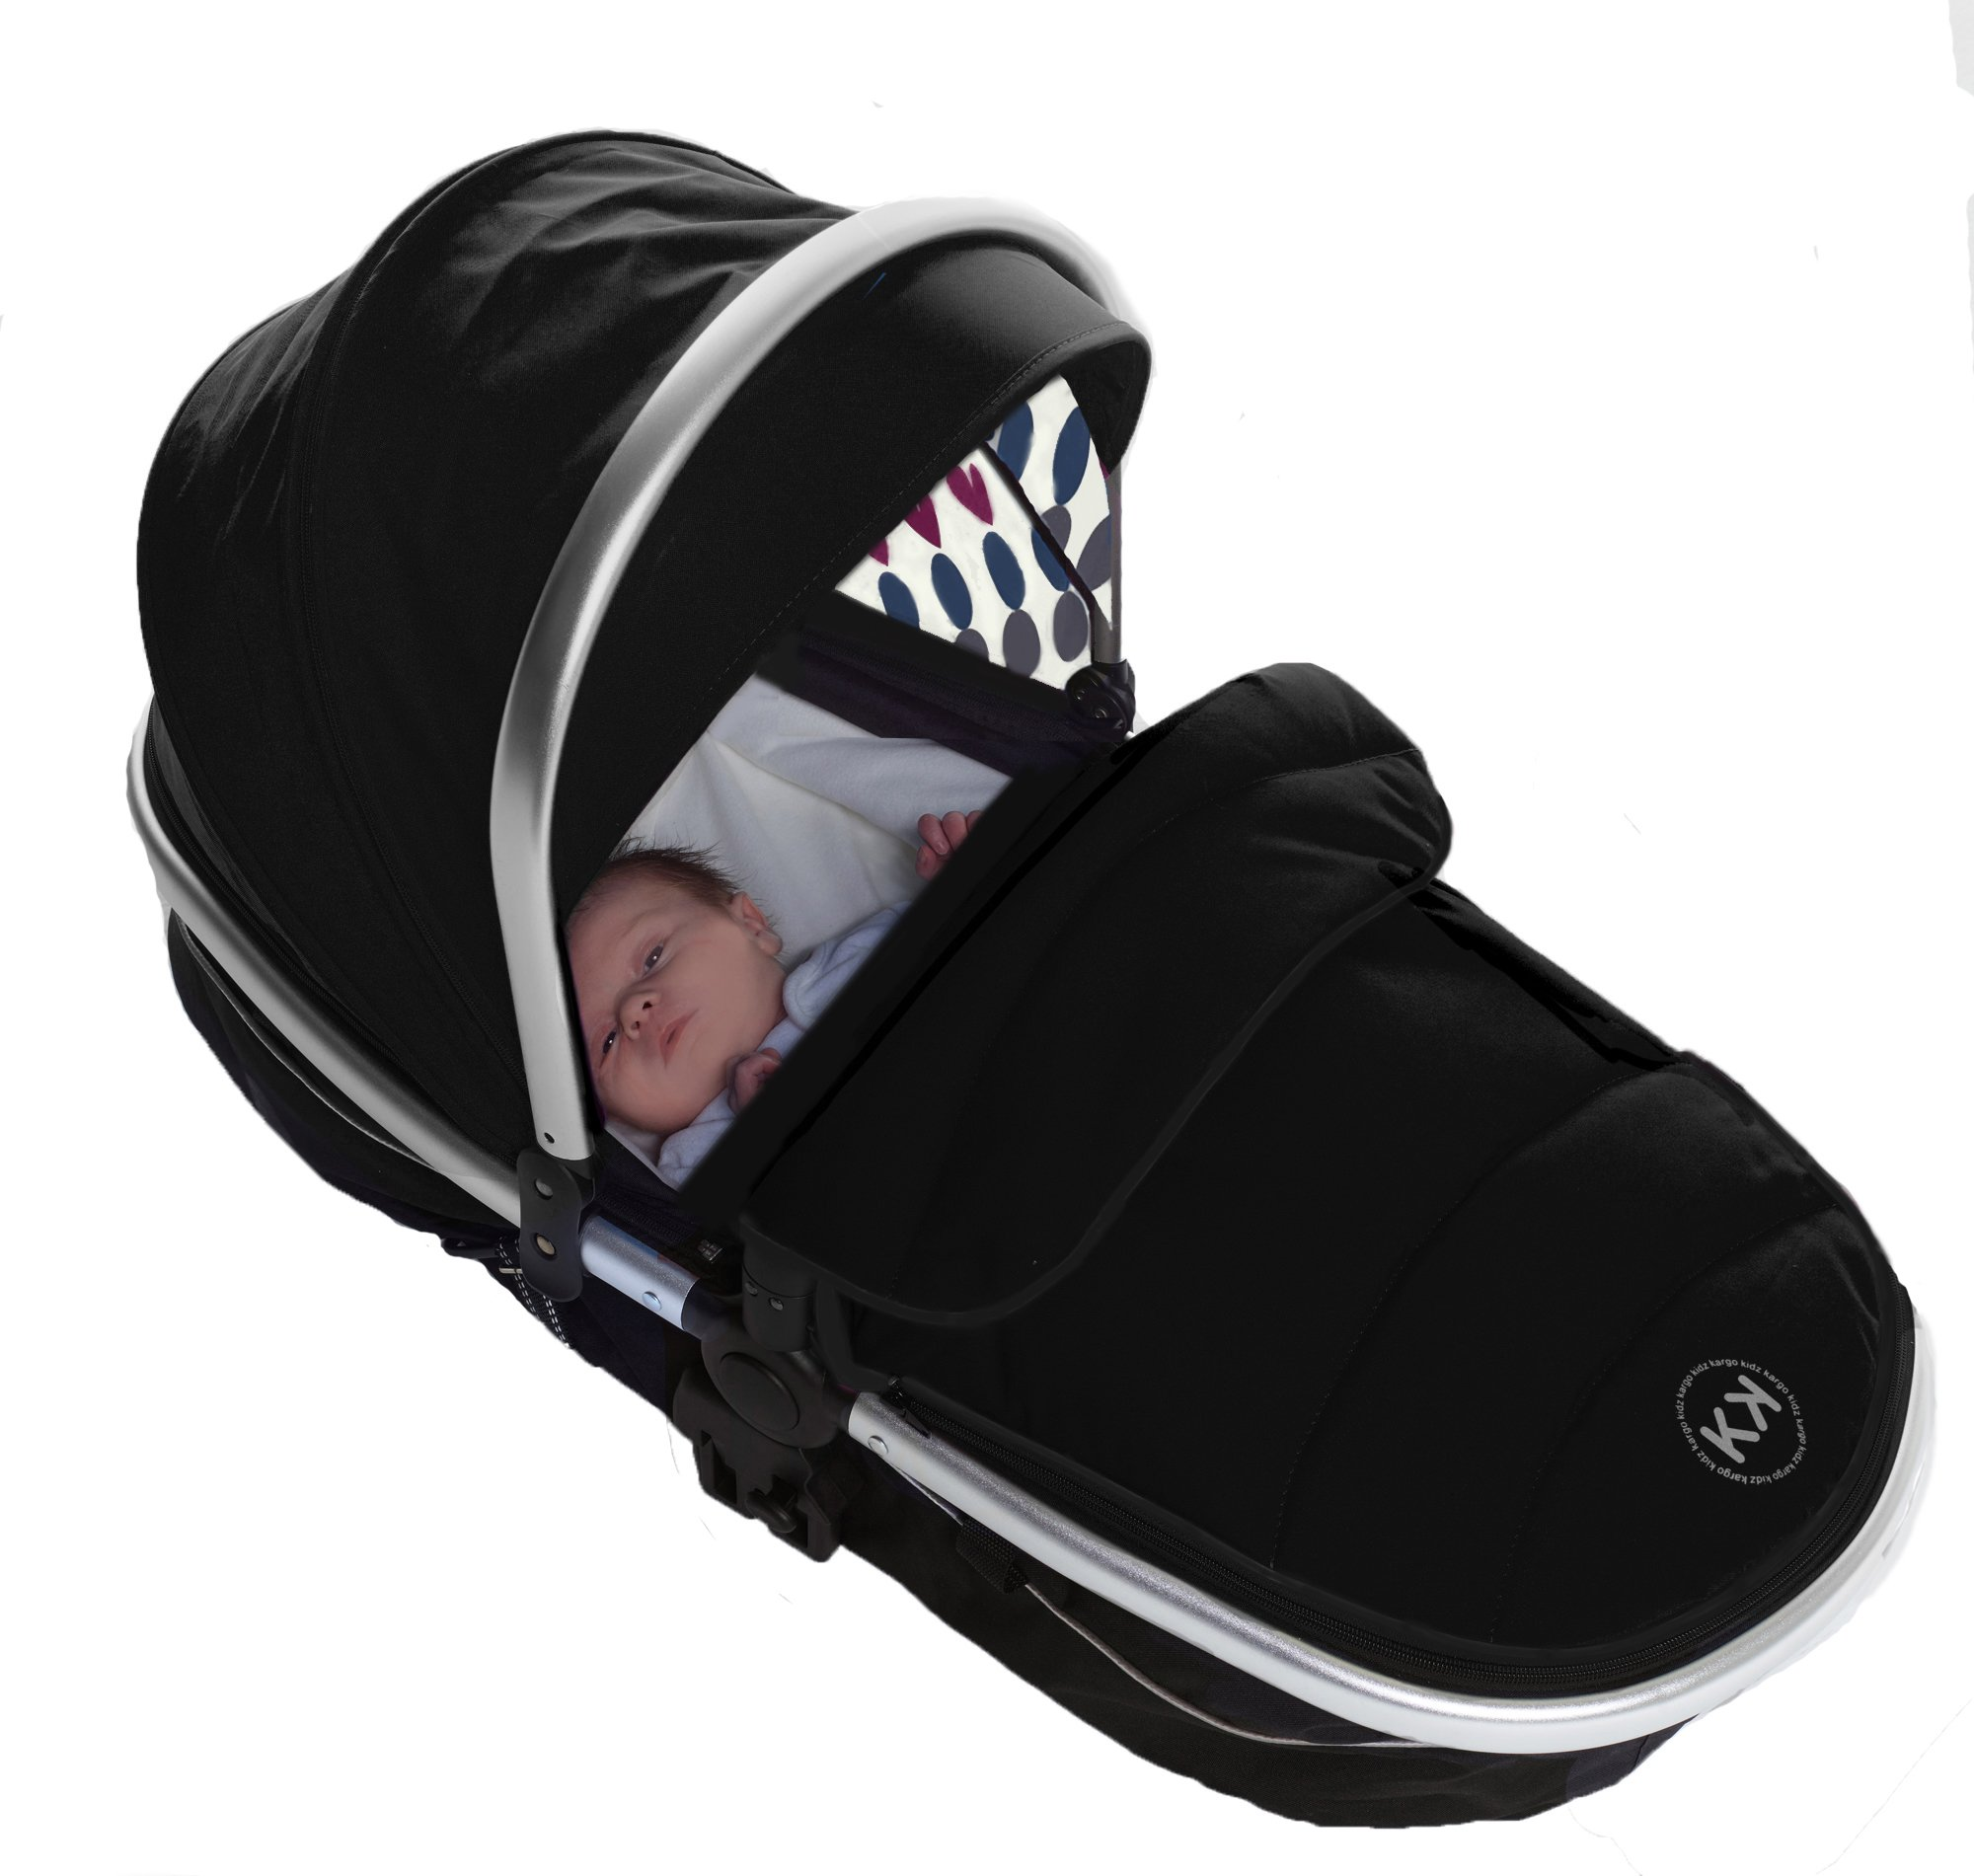 Duellette 21 Combo Twin Tandem Pushchair Baby Newborn carrycots Pram Travel system : 2 Pramette/seat units, 2 FREE Black footmuffs 2 Rain covers, Midnight Black by Kids Kargo Kids Kargo Demo video please see link https://www.youtube.com/watch?v=X_tEcnQ8O8E Compatible with car seats; Kids Kargo, Britax Baby safe or Maxi Cosi adaptors. Versatile. Suitable for Newborn Twins: Both carrycots have mattress and soft lining, which zip off. Remove lining and lid, when baby grows out of carrycot mode. Converts to a full sized seat unit, with 5 point harness. 3